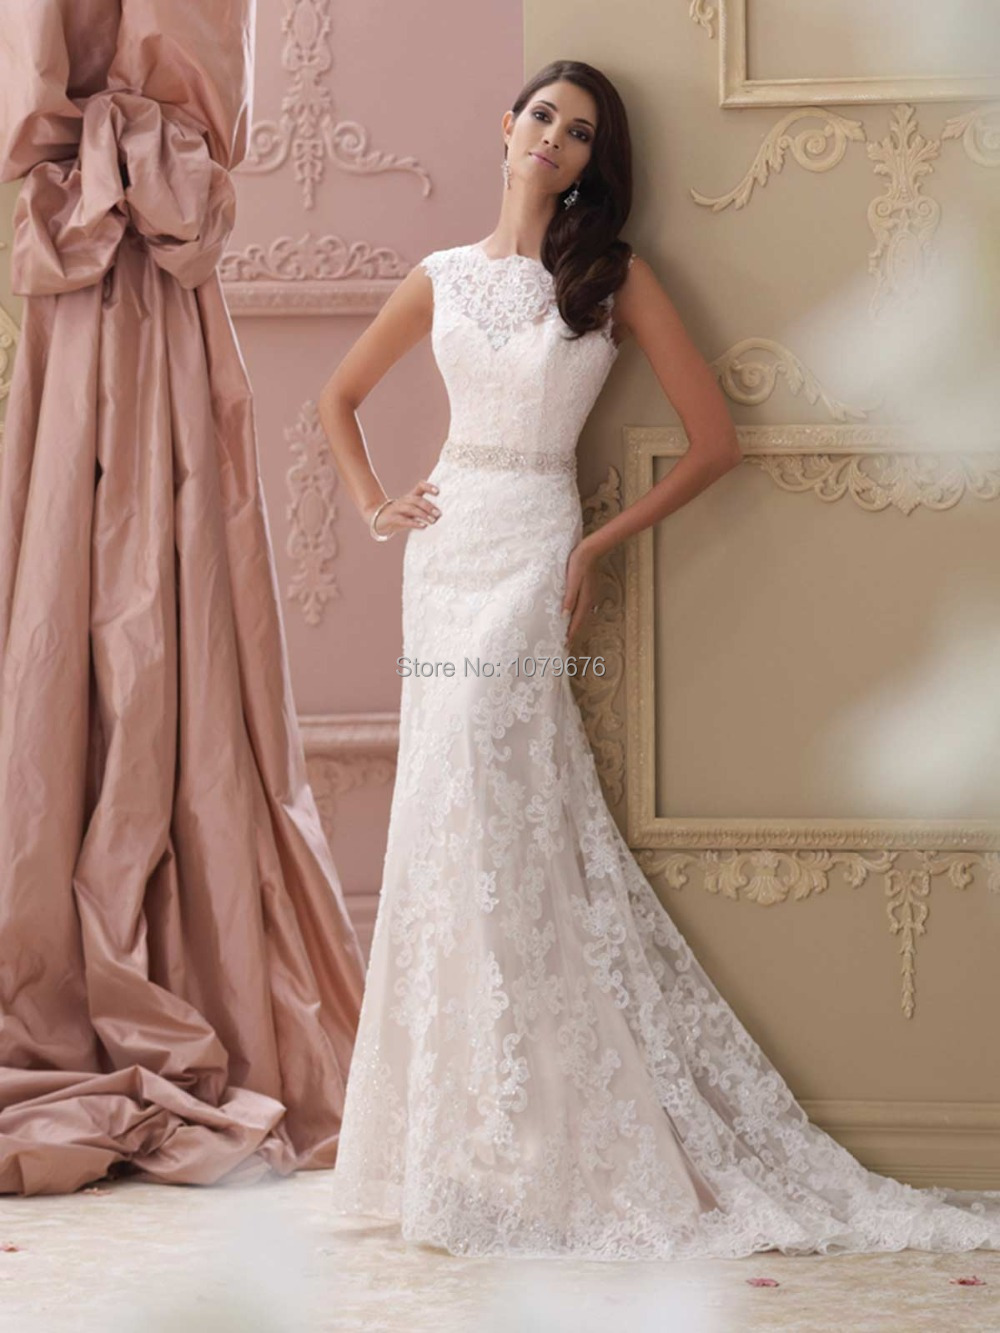 High quality elegant wedding dresses vintage lace beaded for Lace sleeve backless wedding dress